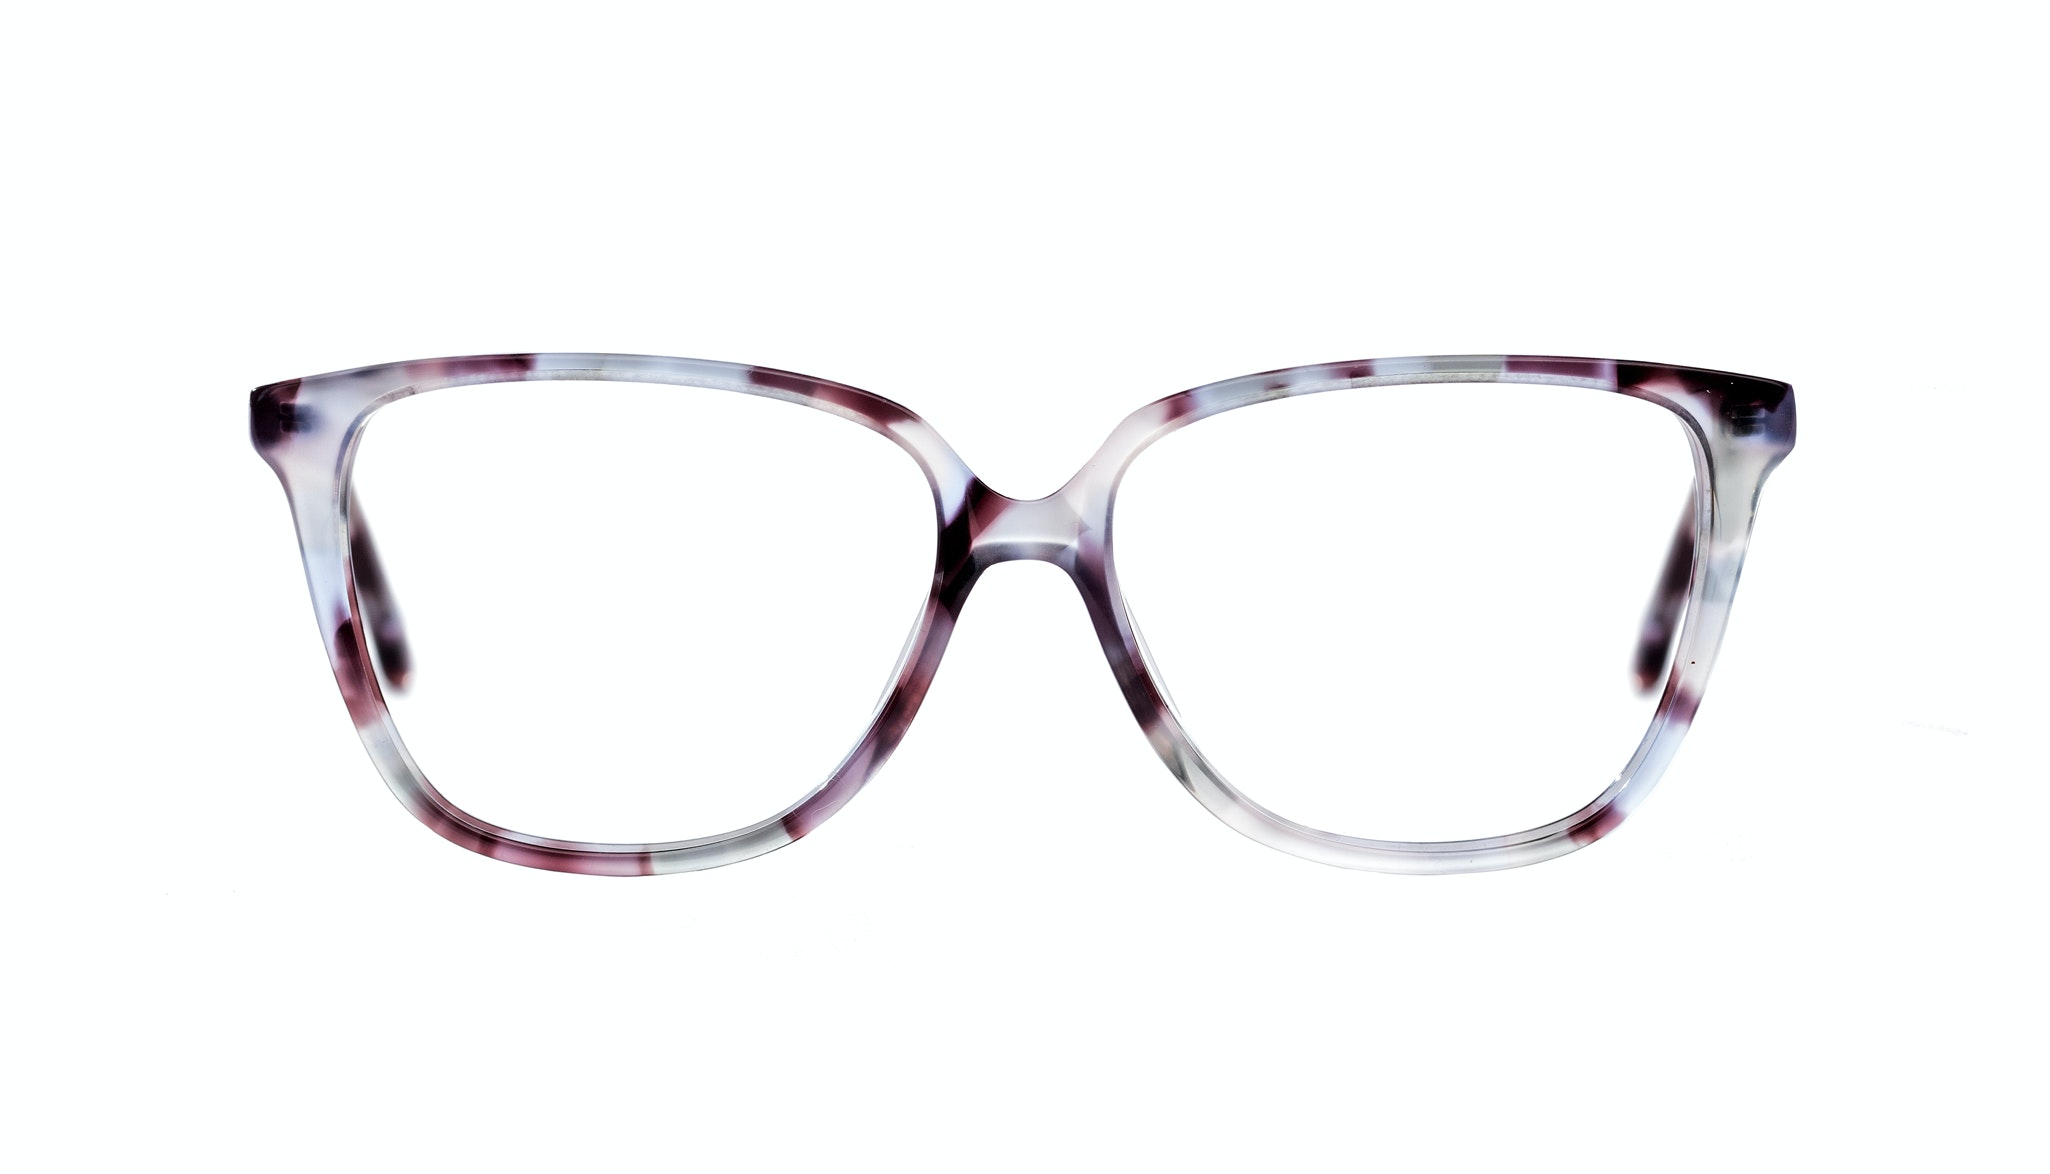 Affordable Fashion Glasses Rectangle Square Eyeglasses Women Muse Lilac Tort